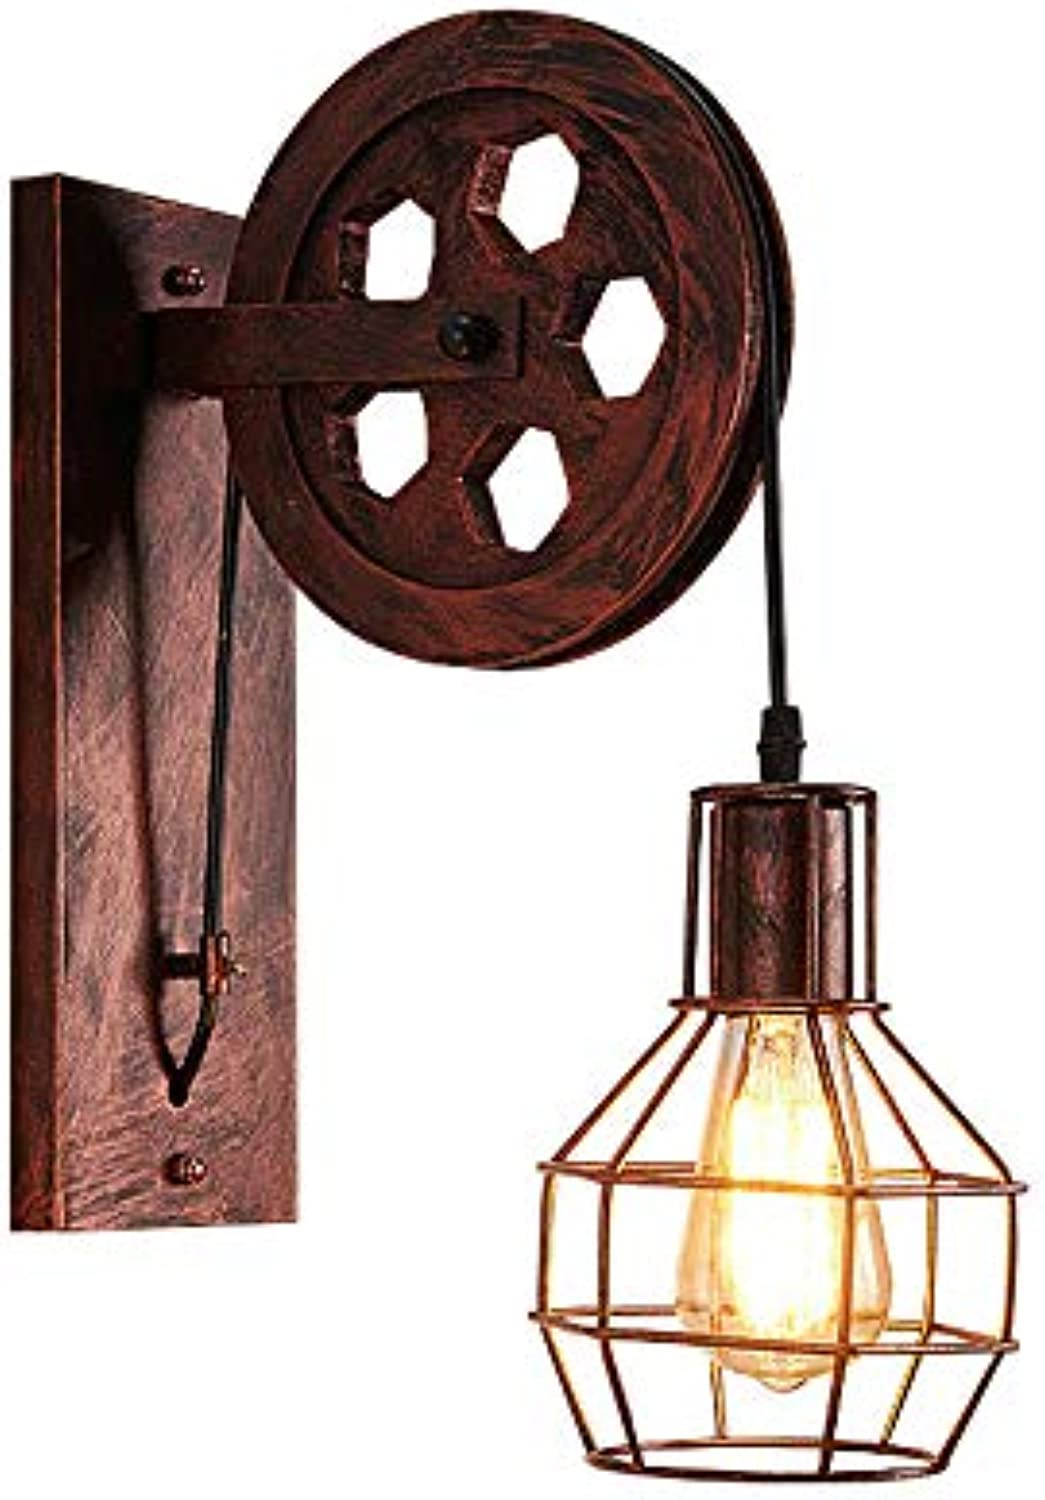 Zweifarbige optionale American Retro Wall Lamp Industrial Wind Creative Wall Lamp Pulley Wall Lamp Restaurant Lamp Balcony Corridor Shop Lamp,Brass